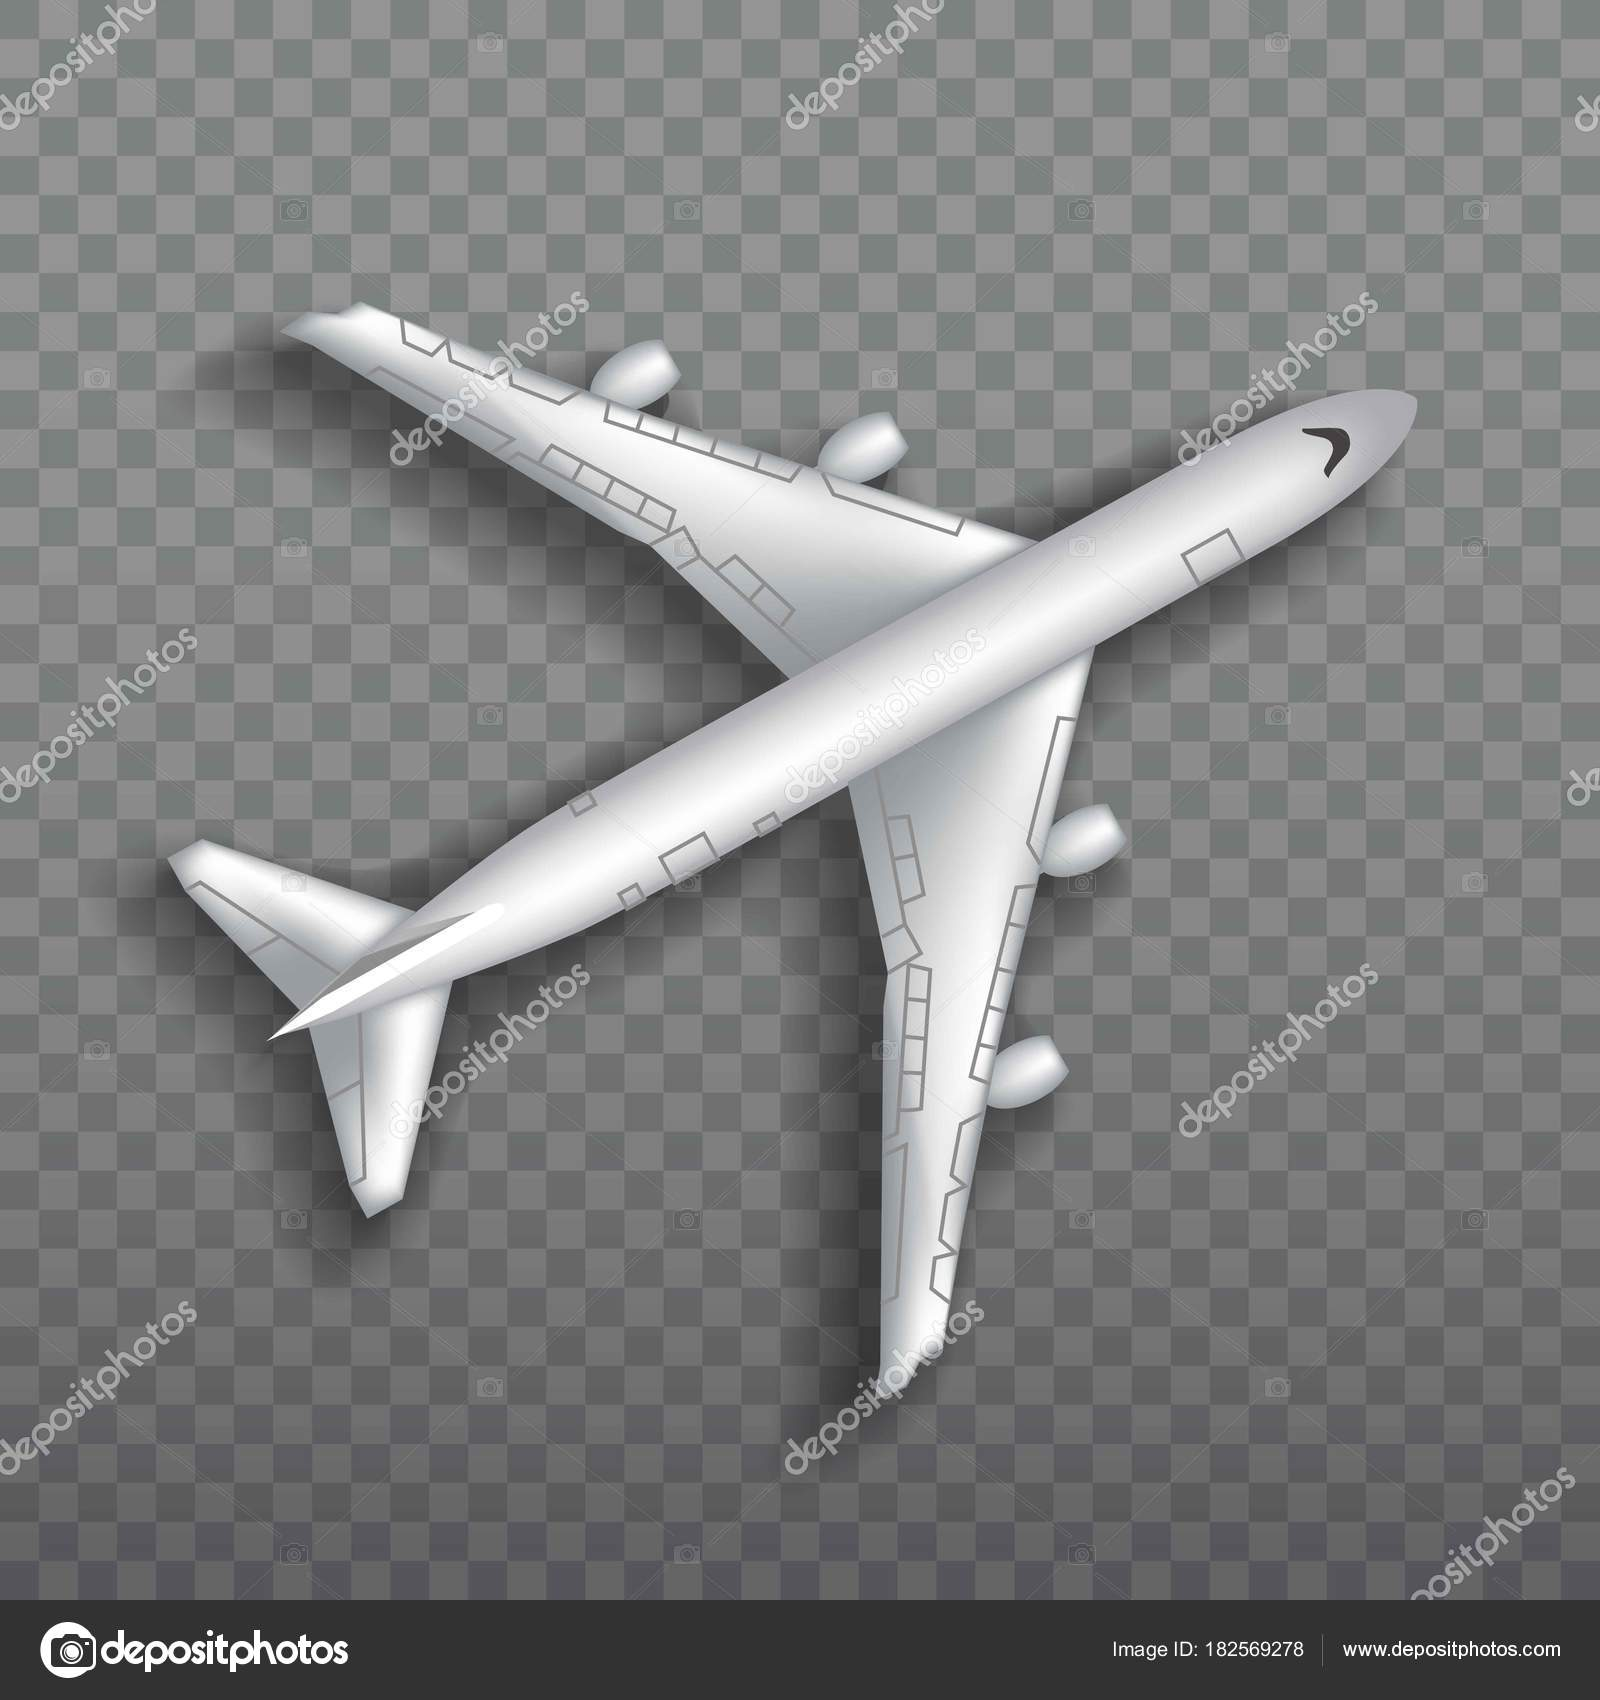 Flying Airplane Jet Aircraft Airliner Top View Of Detailed Realistic Passenger Air Plane Isolated On Transparent Background Vector Illustration